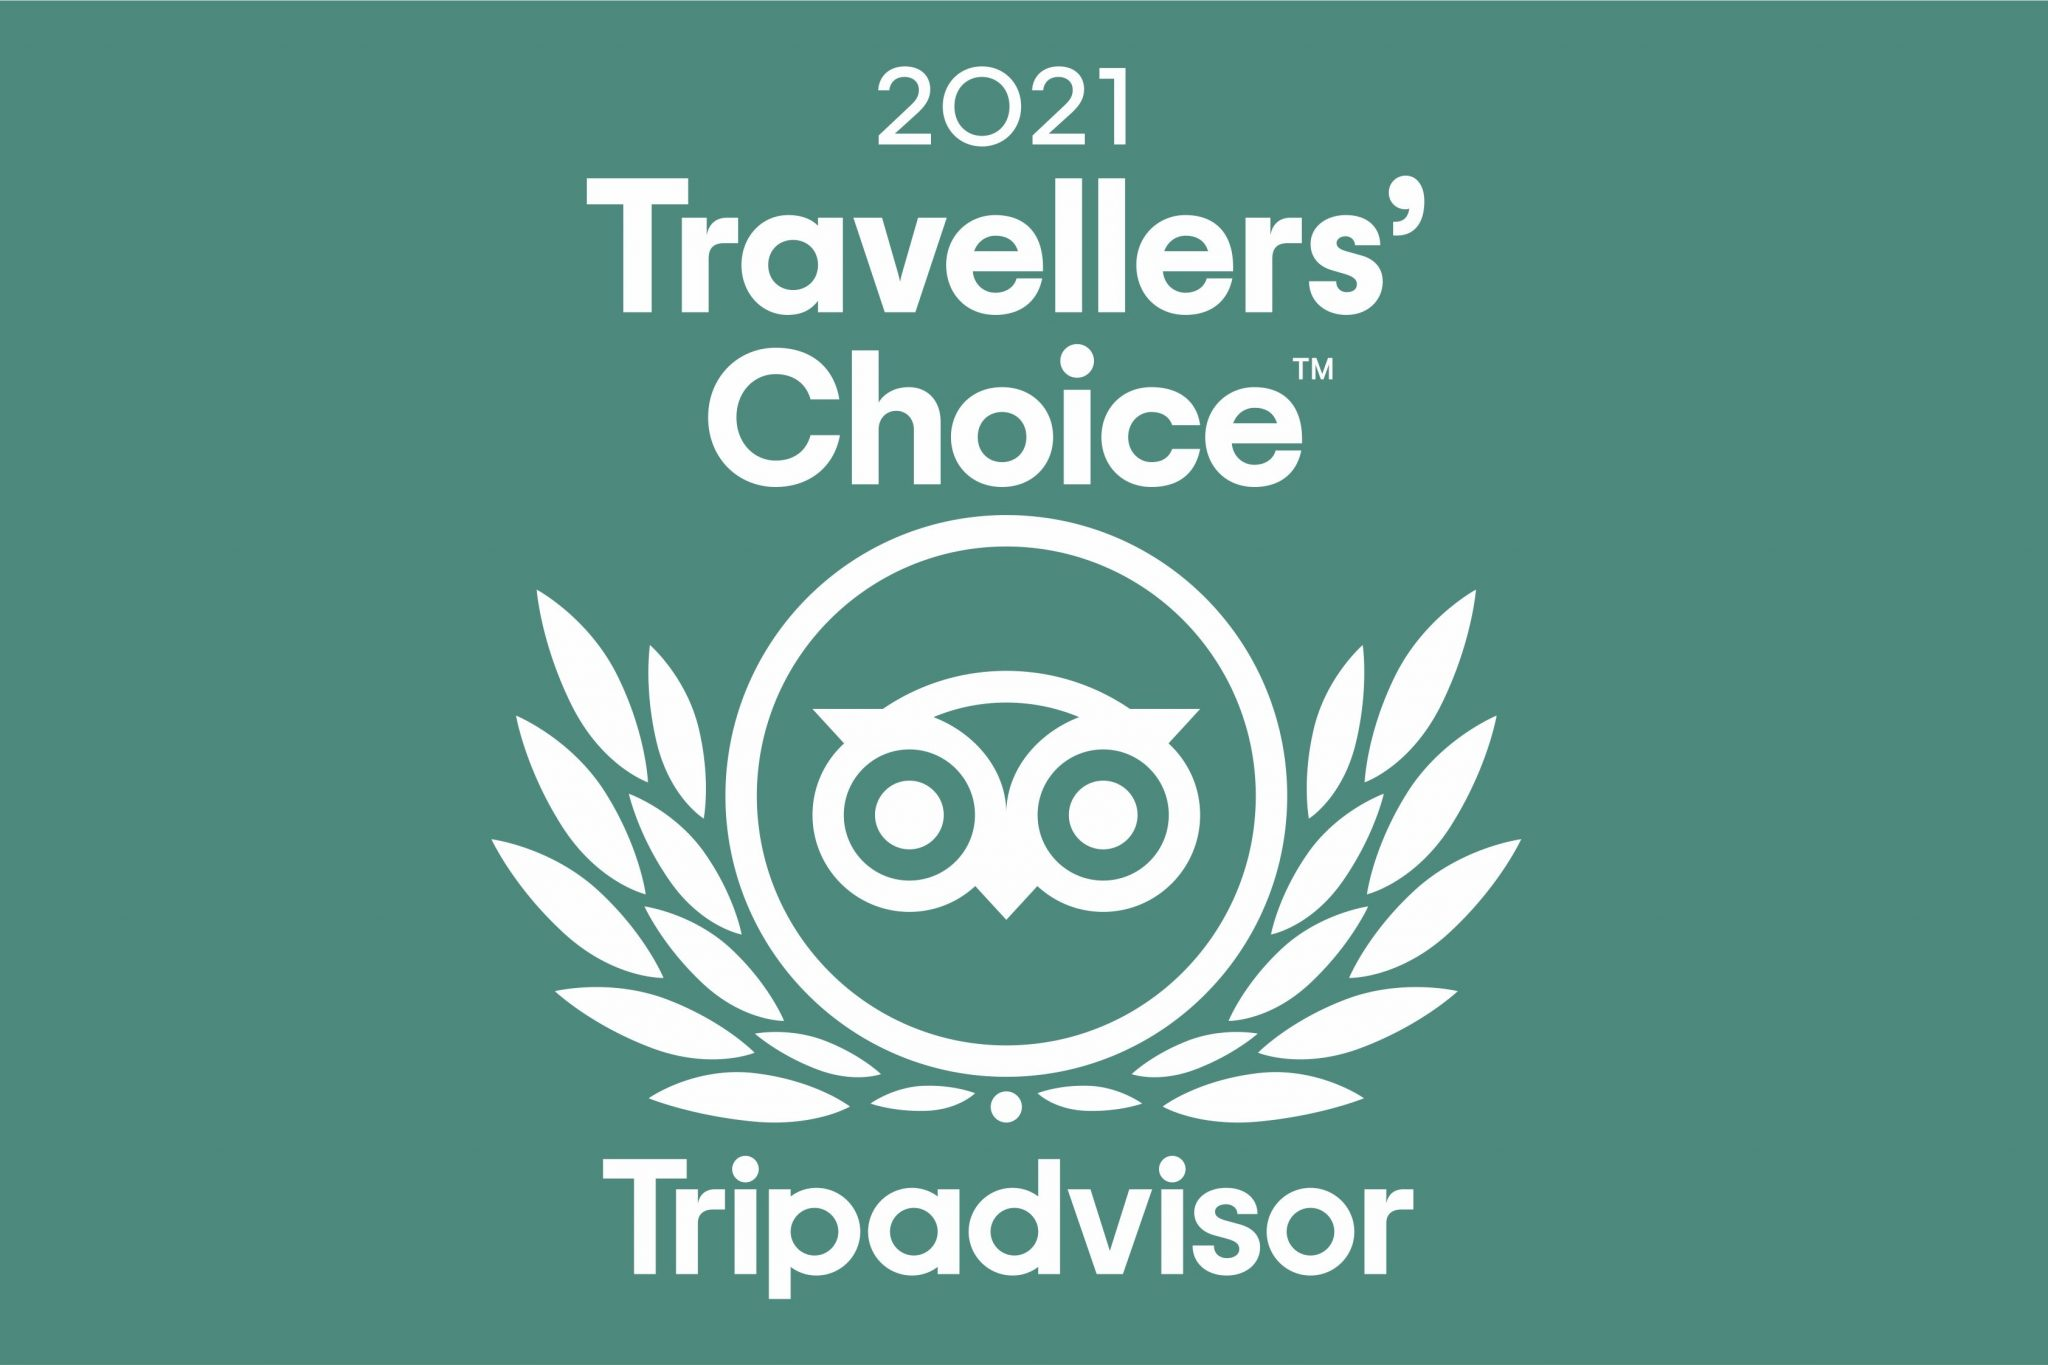 Det Gamle Pakhus modtager Travellers' Choice-pris 2021